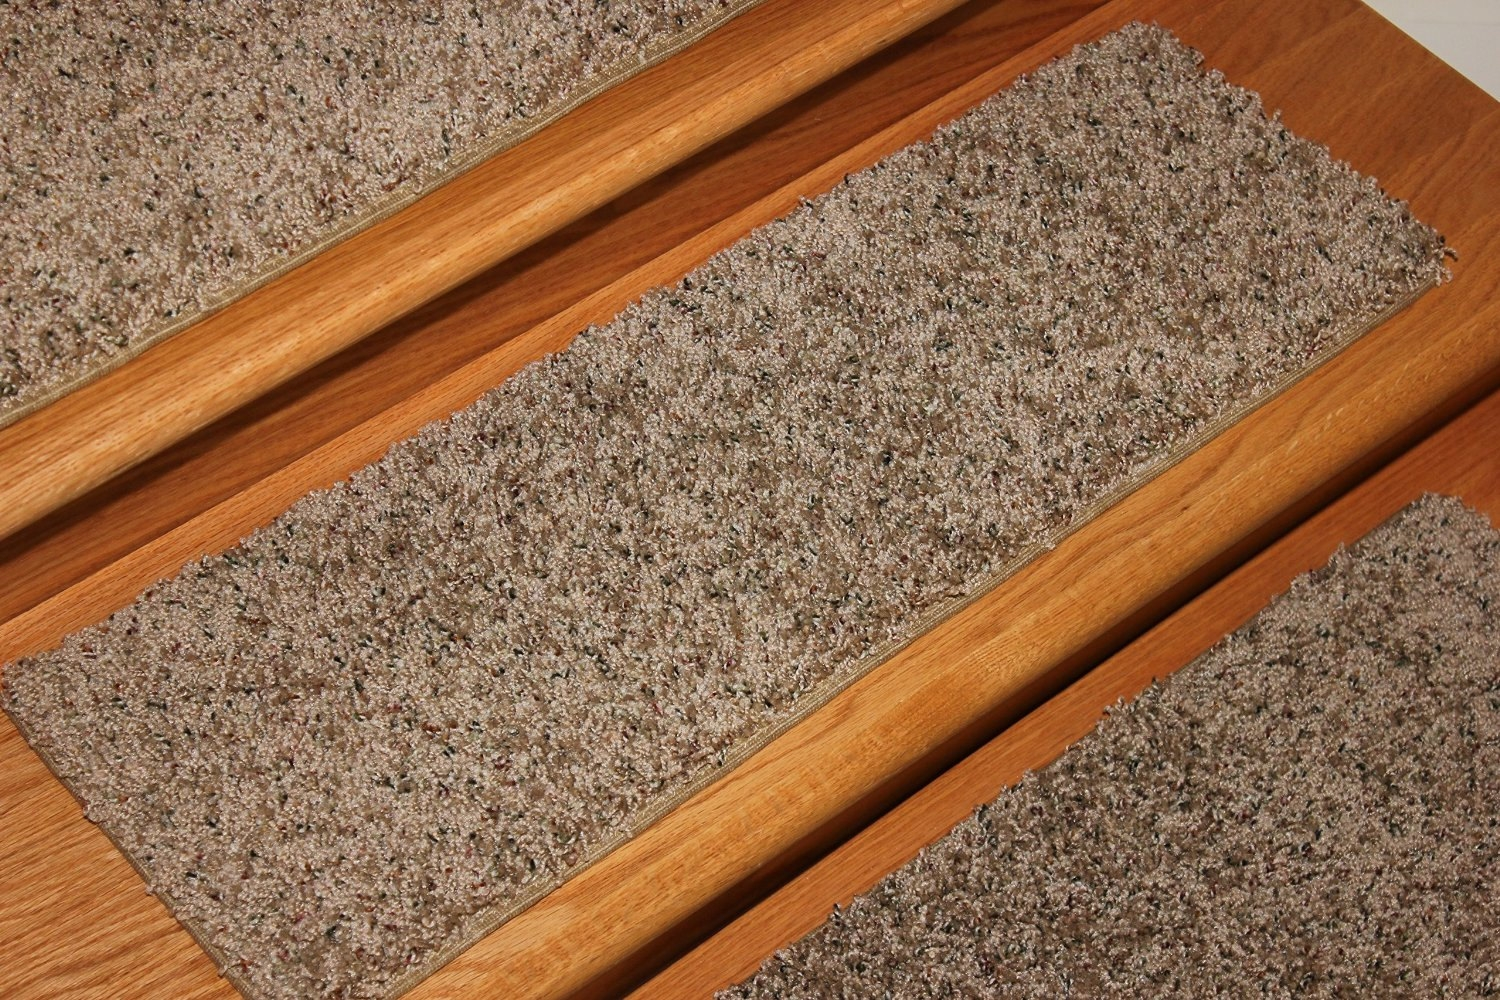 Stair Treads Etsy For Set Of 13 Stair Tread Rugs (Image 13 of 15)